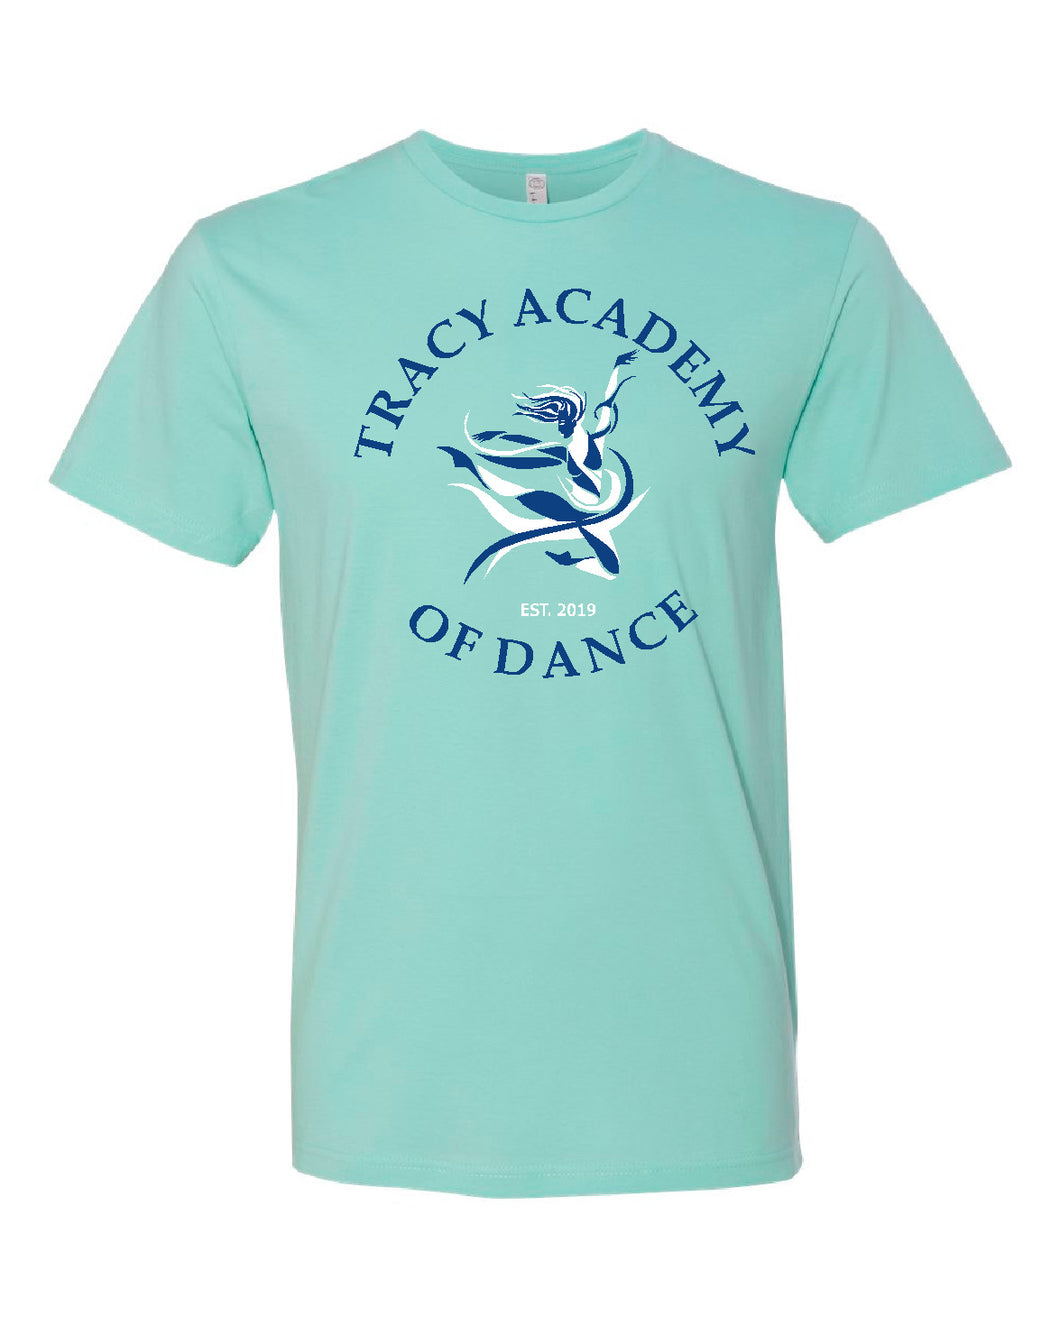 Tracy Academy of Dance Tshirt